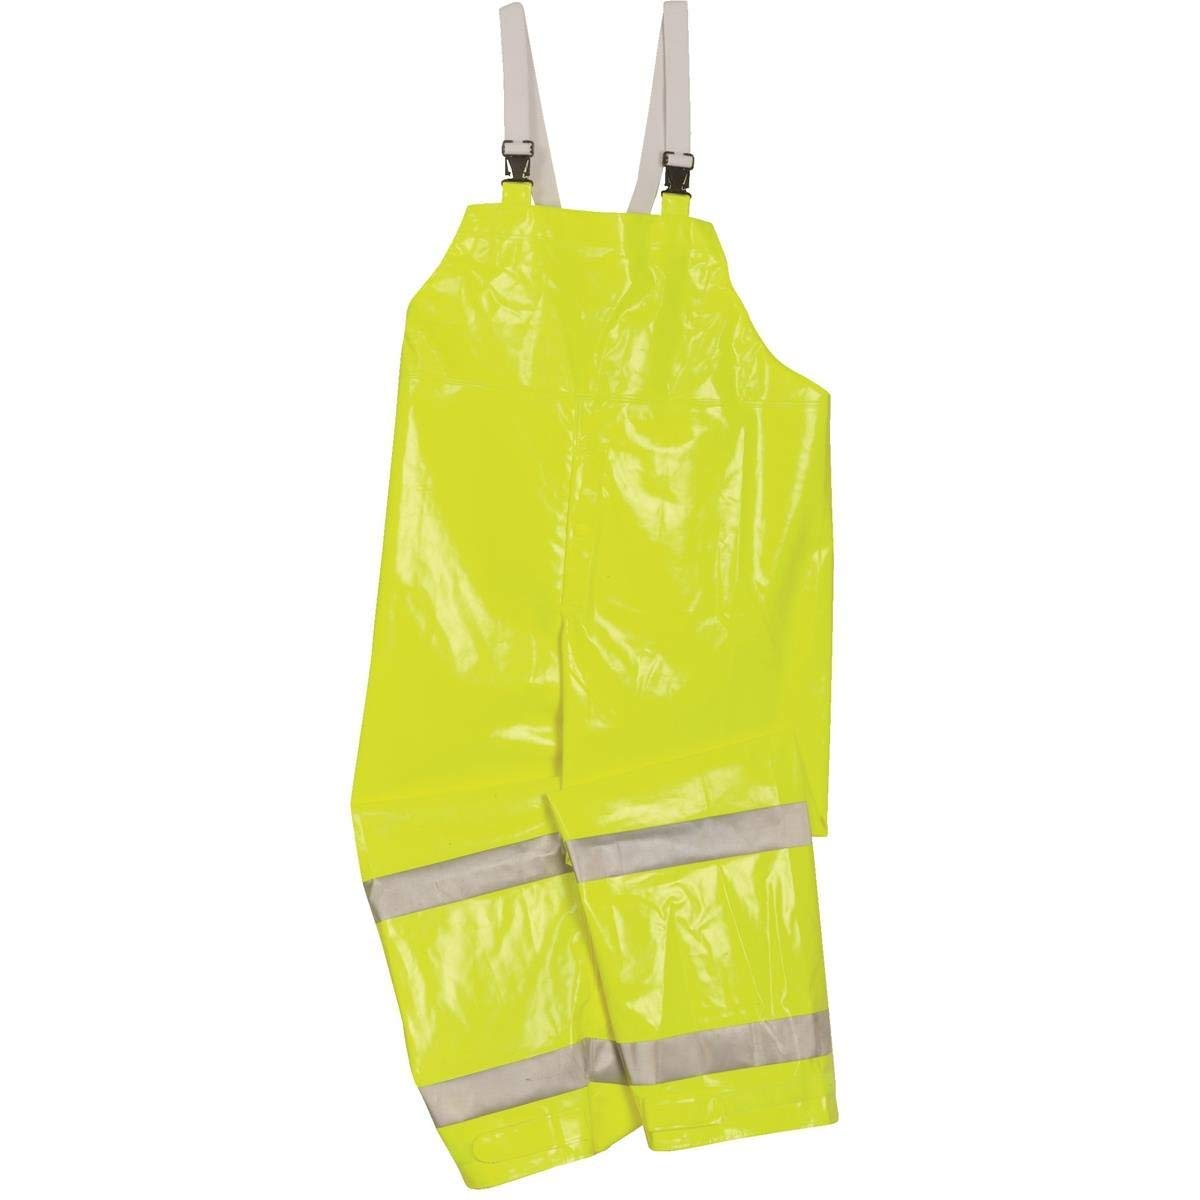 Brite Safety Style 5213 FR Safety Raingear - Hi Vis Bib Overalls for Man and Woman, Rain Gear For Men Waterproof, Flame Resistant, ANSI 107 Class E Compliant (6X-Large, Hi Vis Yellow)